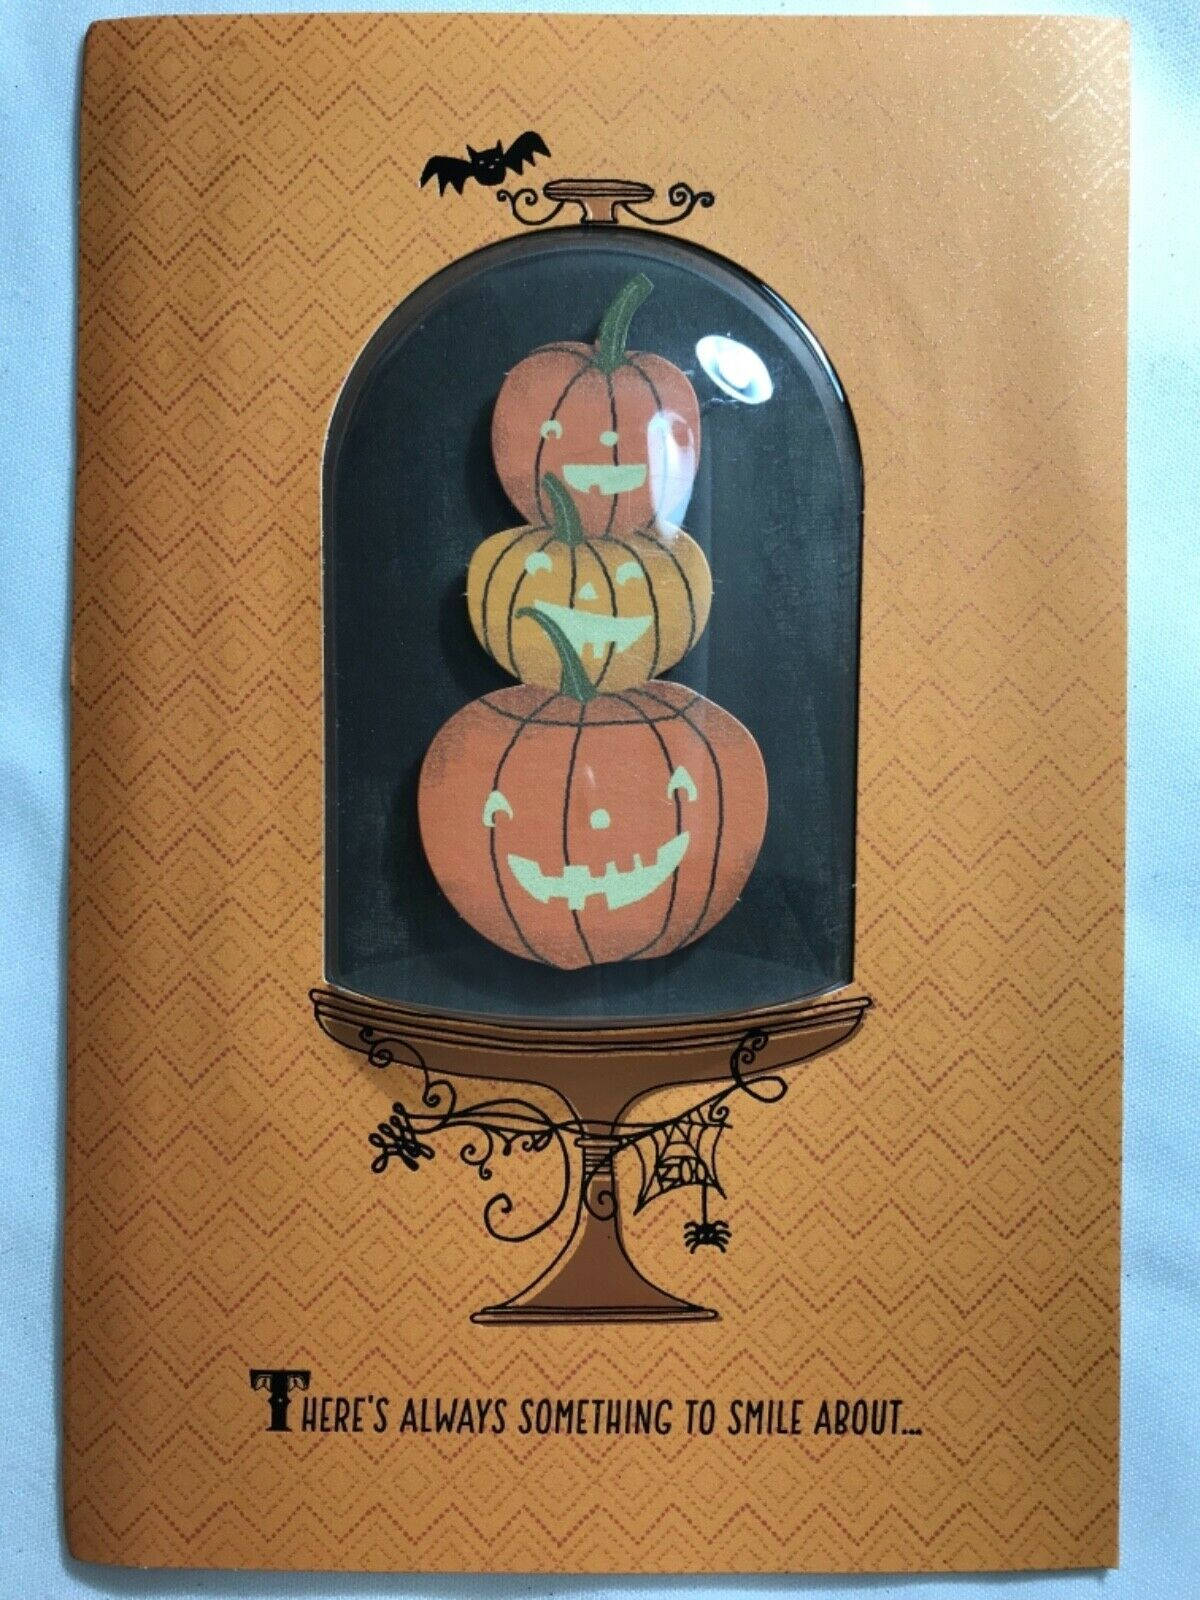 Primary image for Halloween Card 3D Card w/ 3 Pumpkins in a Glass looking Cloche/Display Case